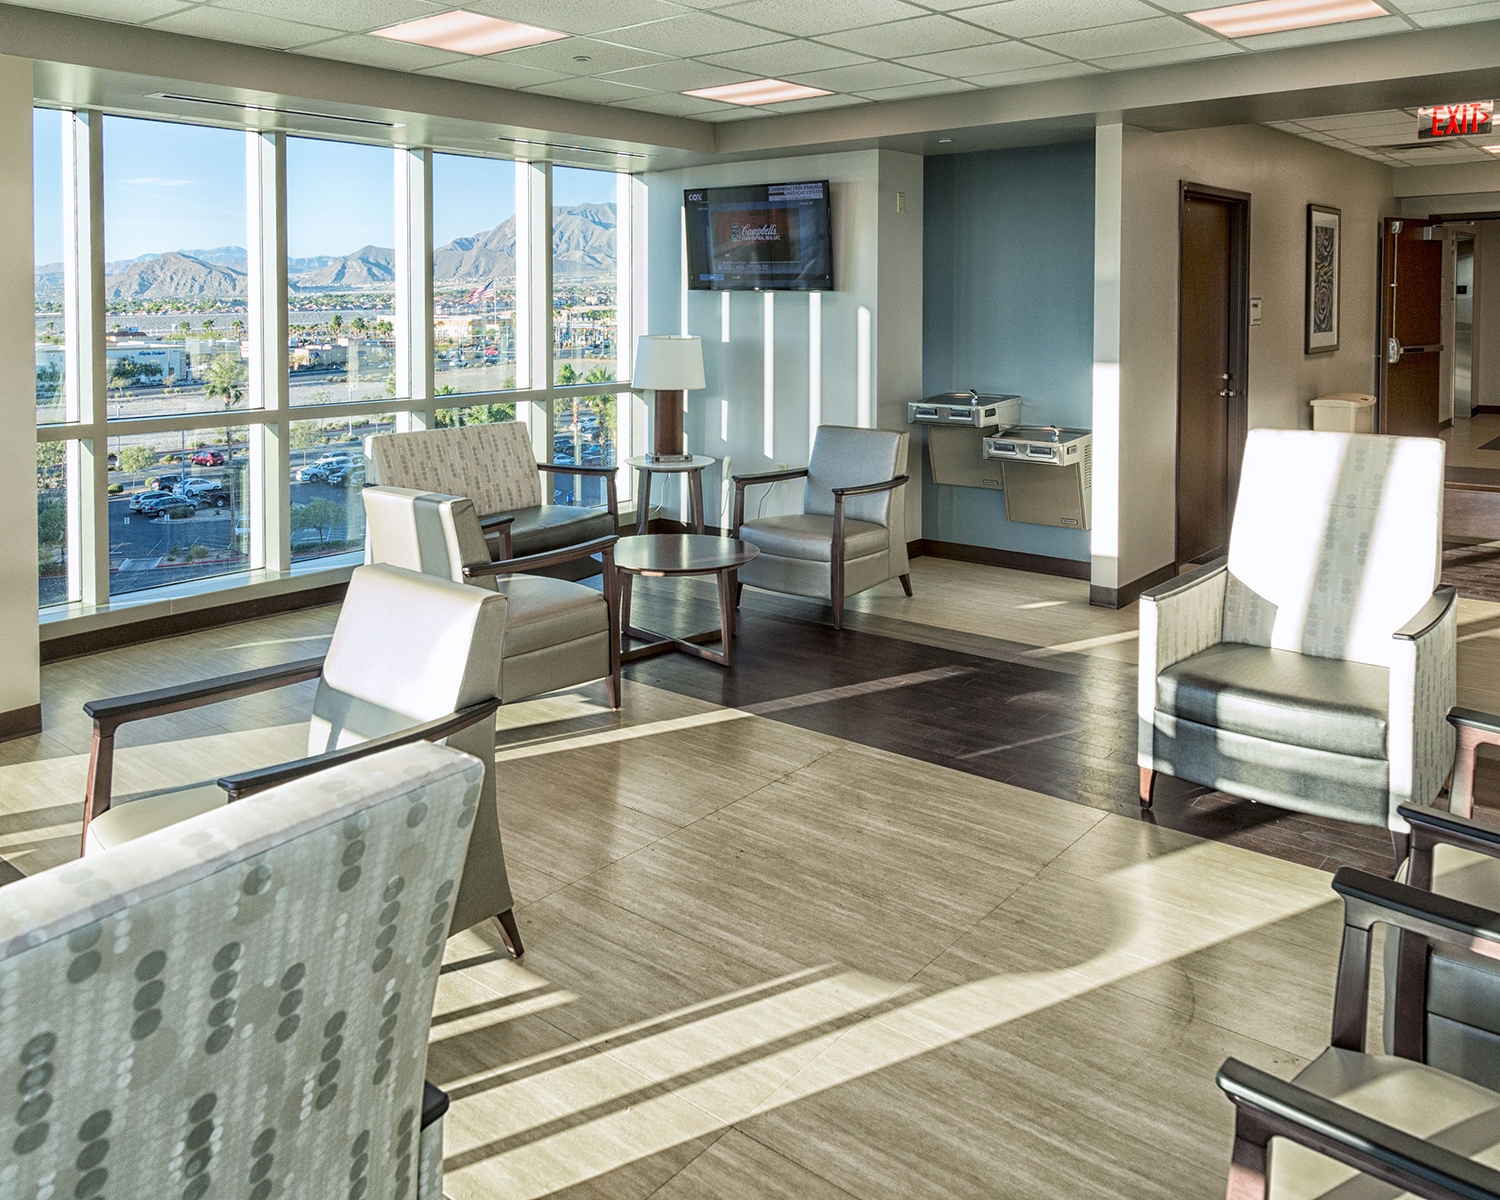 Centennial Hills Hospital | 4th Floor